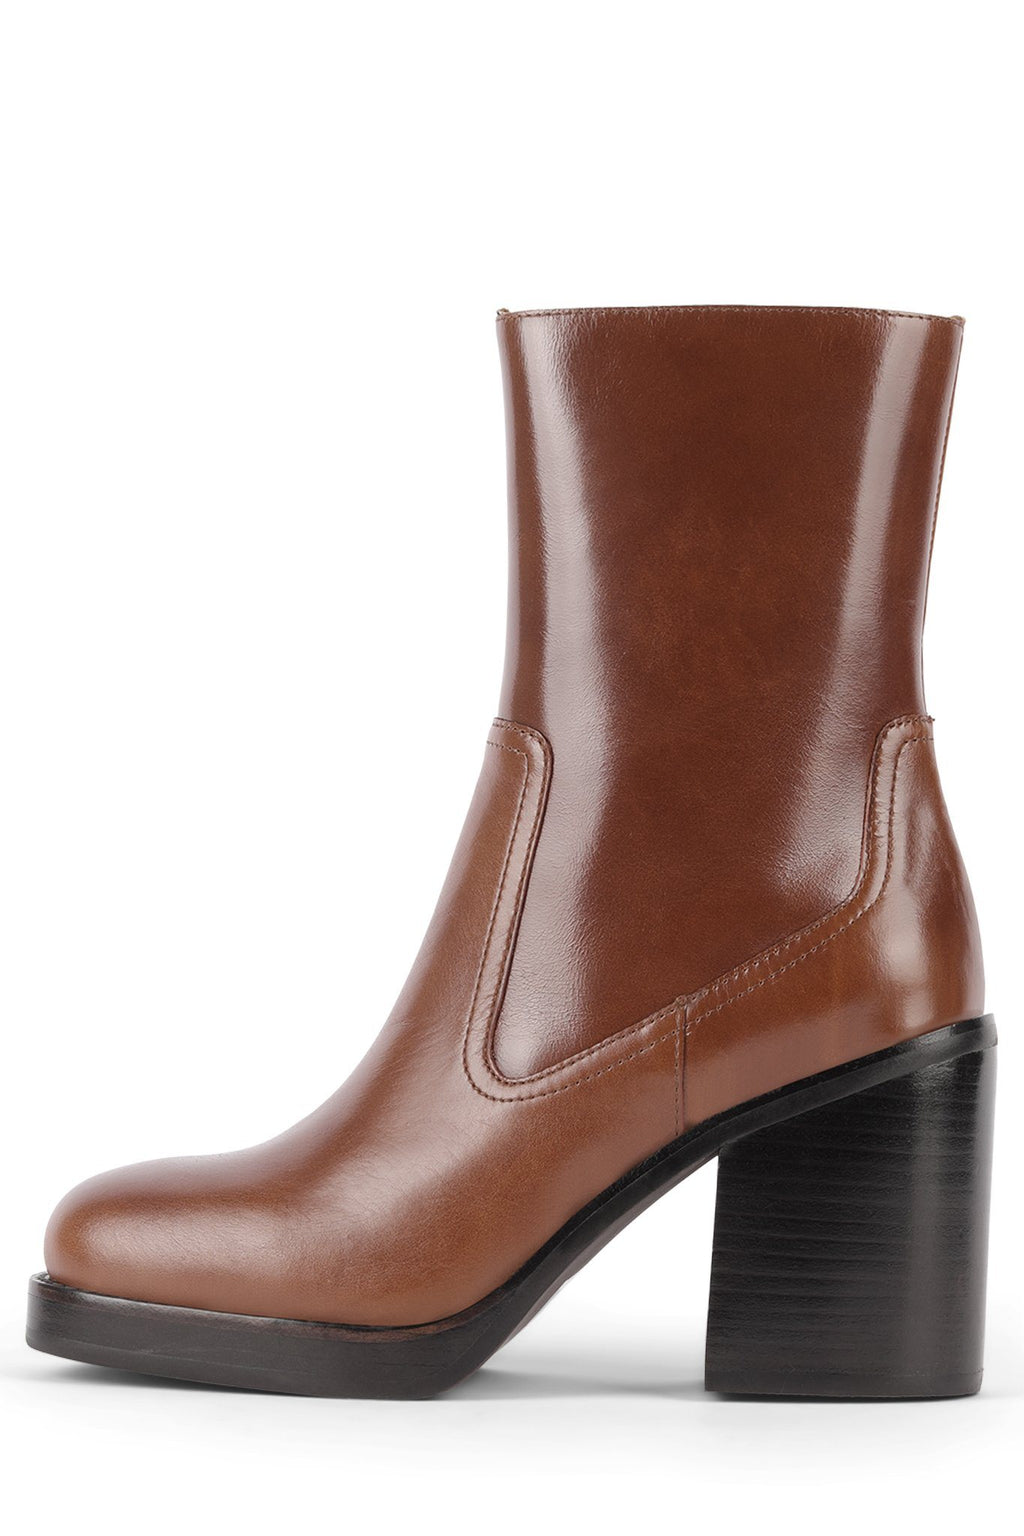 MAXEN-2 Mid-Calf Boot Jeffrey Campbell Tan 6